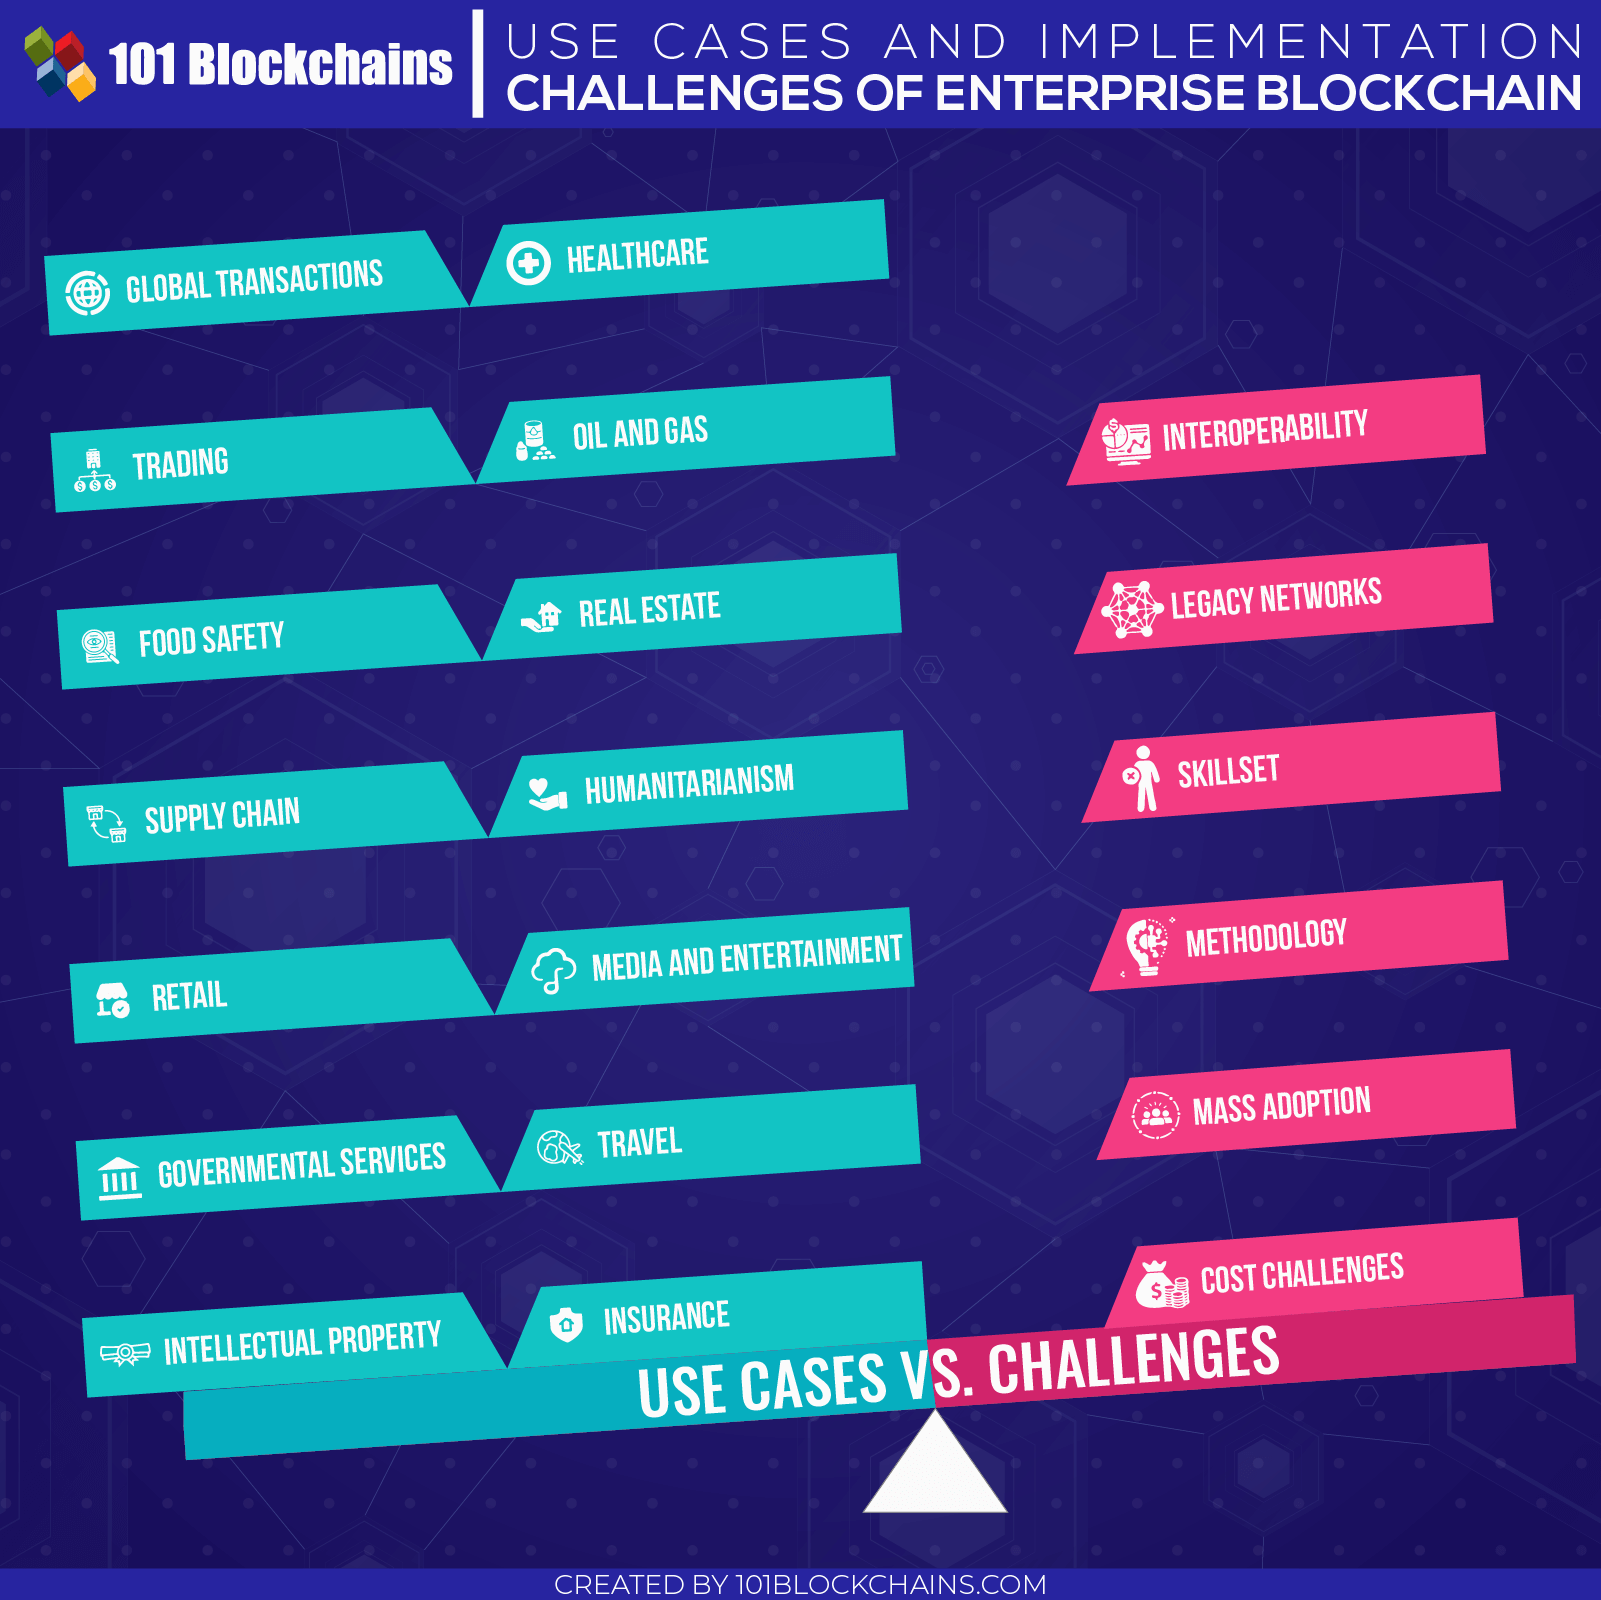 Use cases and implementation challanges of Enterprise Blockchain